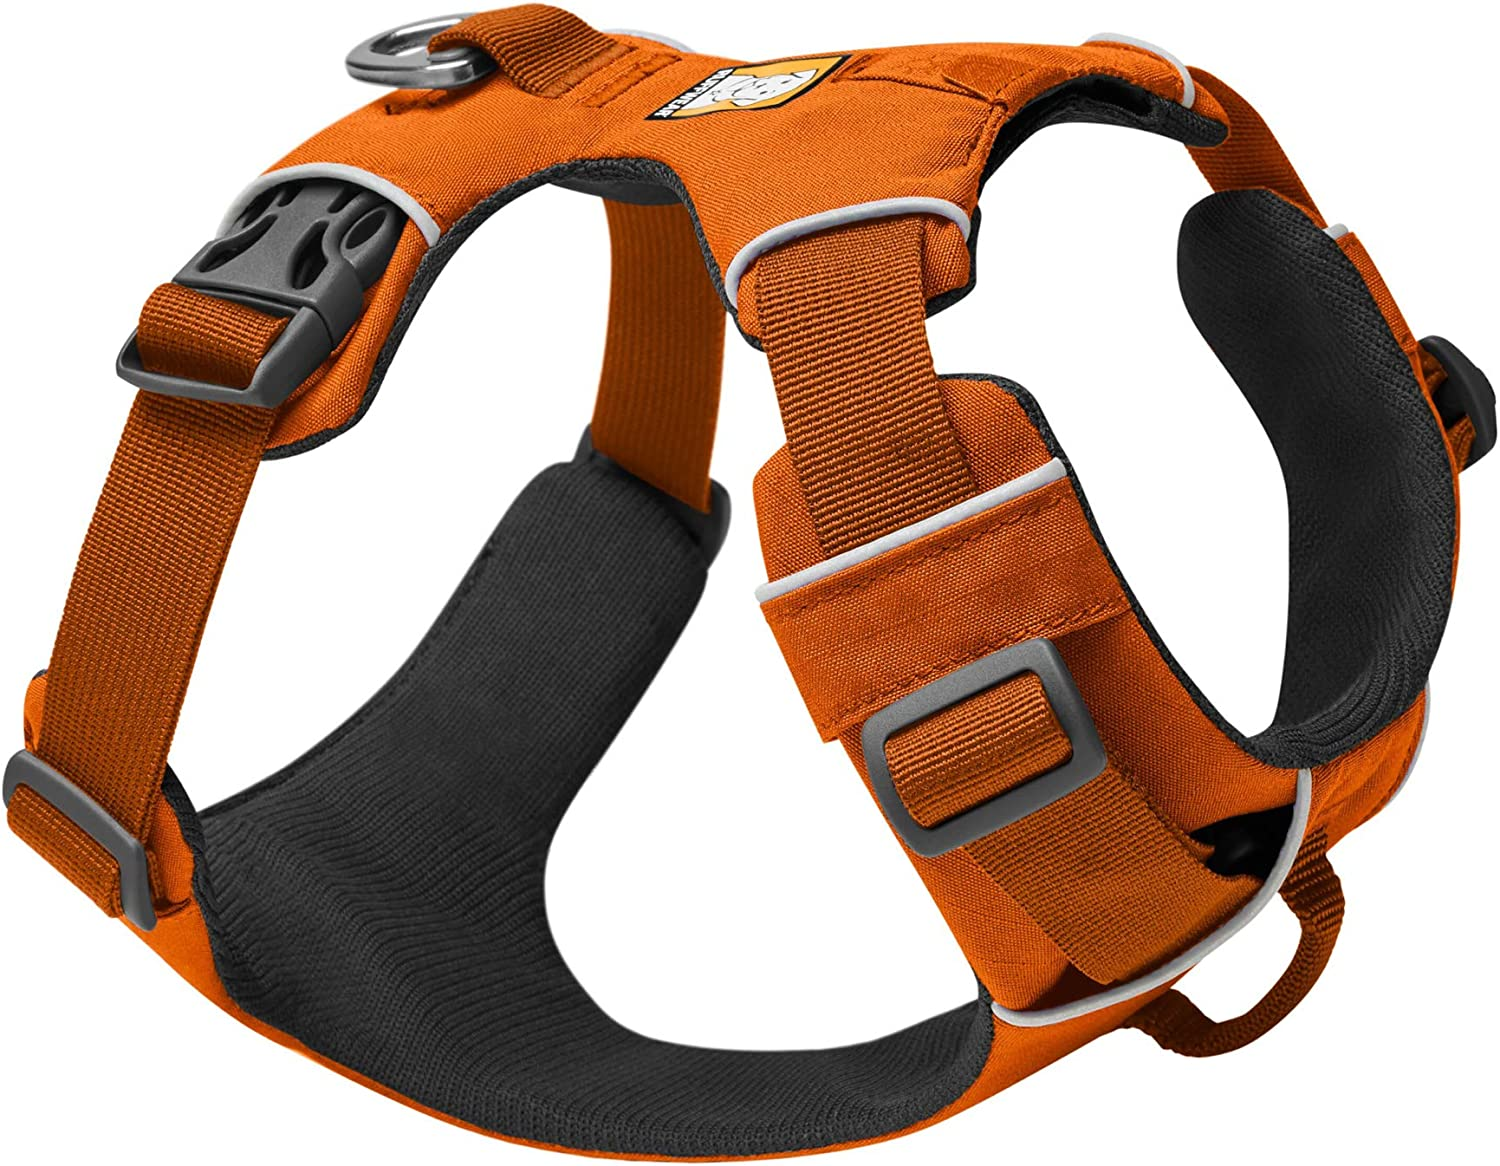 RUFFWEAR - Front Range Dog Harness, Reflective and Padded Harness for Training and Everyday